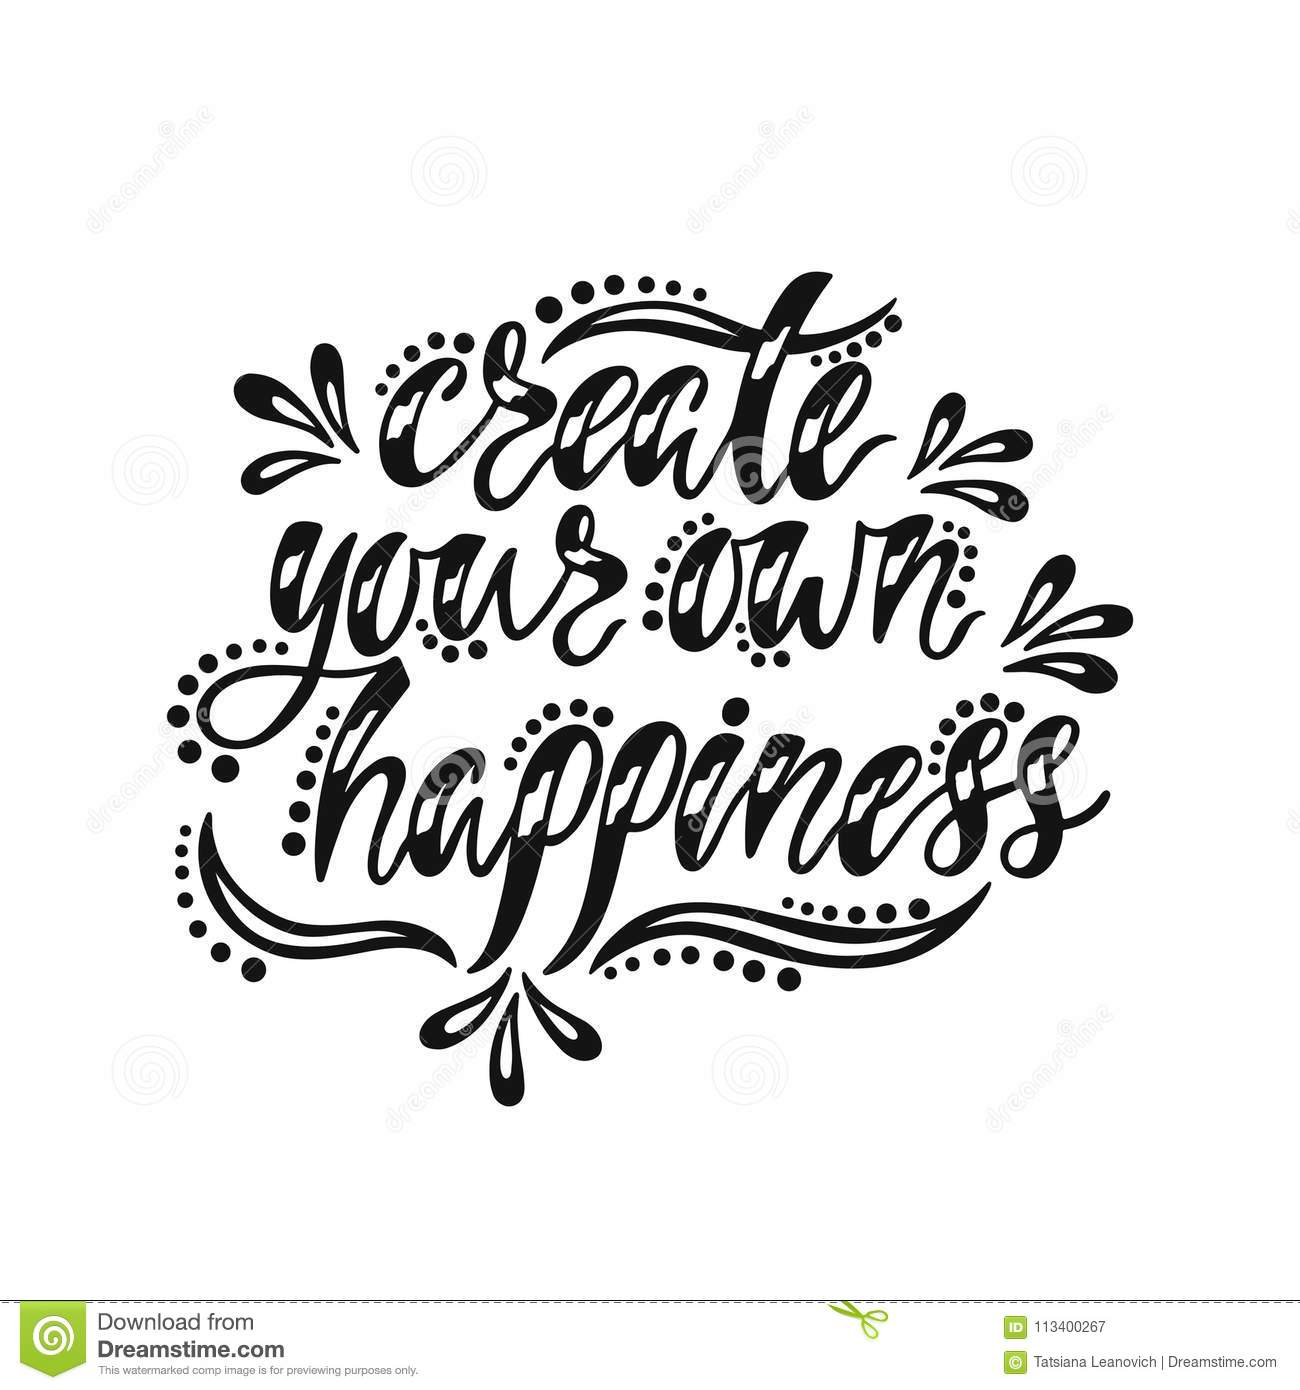 Inspirational Quotes Motivation: Create Your Own Happiness. Inspirational Quote About Happy